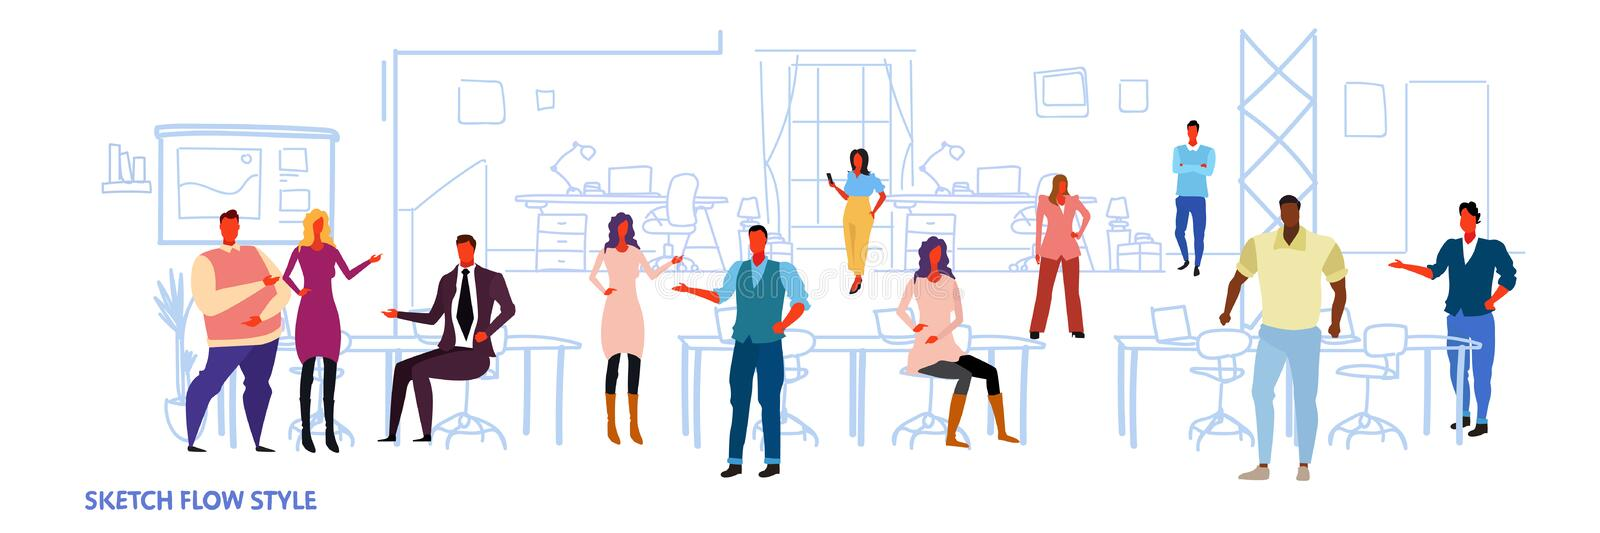 Business people work in co-working office open space center interior creative workplace mix race colleagues royalty free illustration